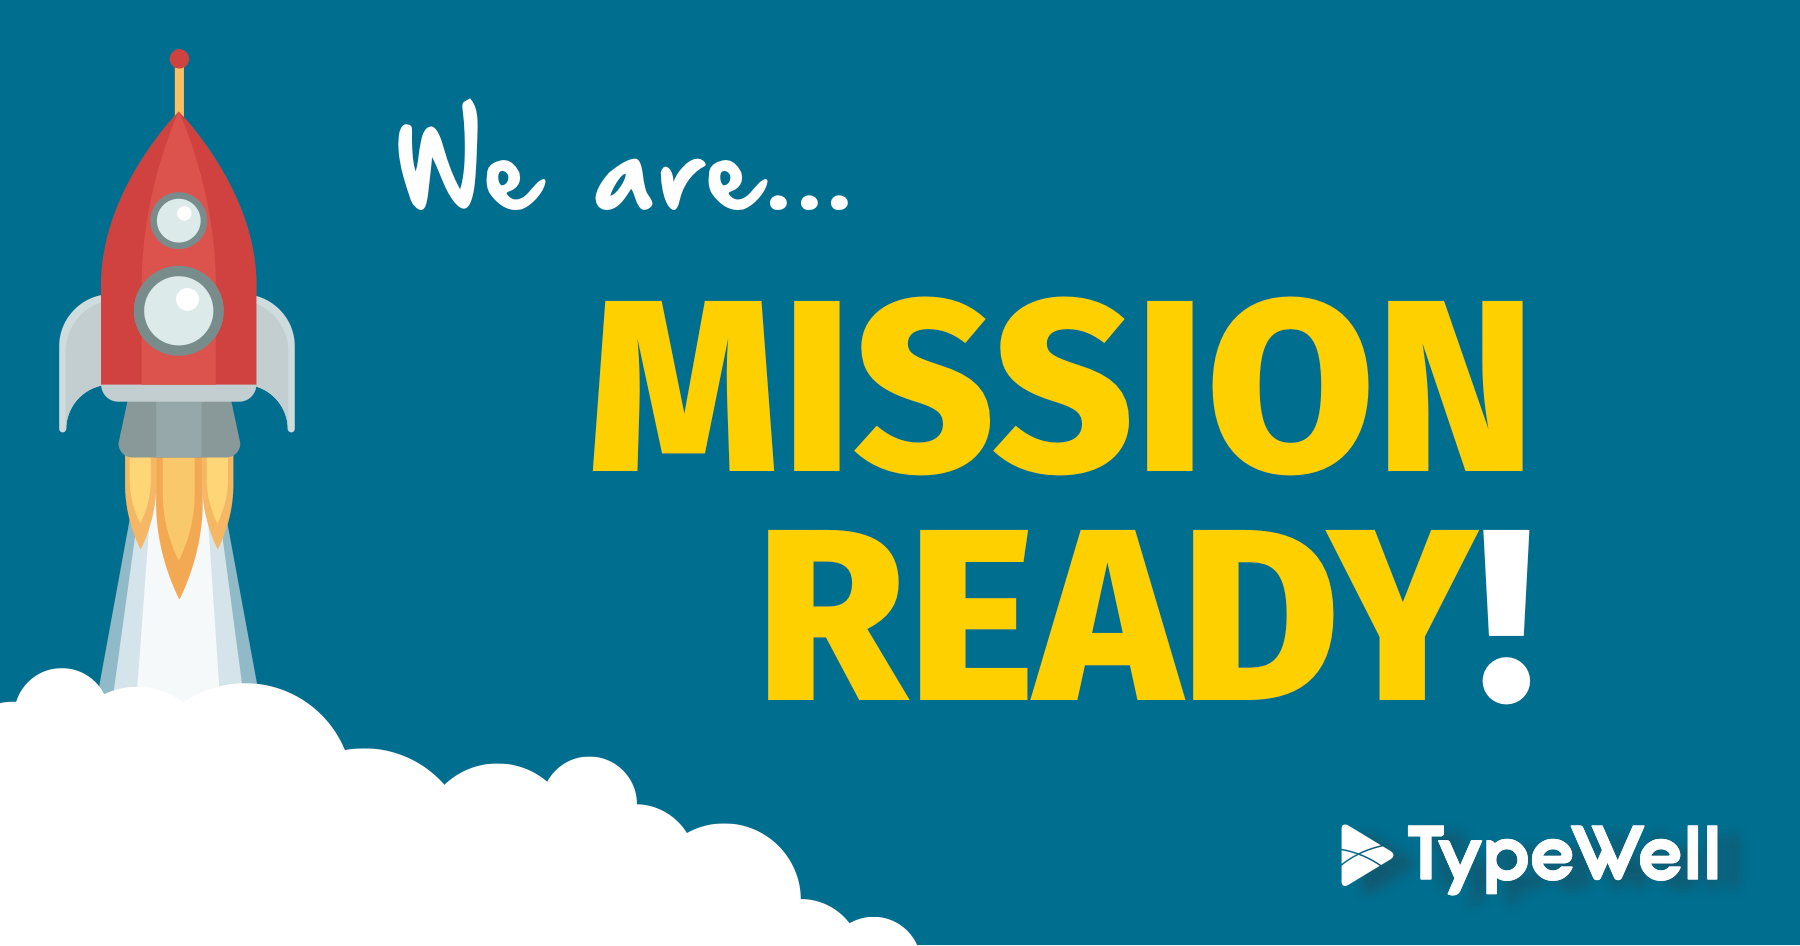 Blue background with rocket launching and text that says: We are Mission Ready!""